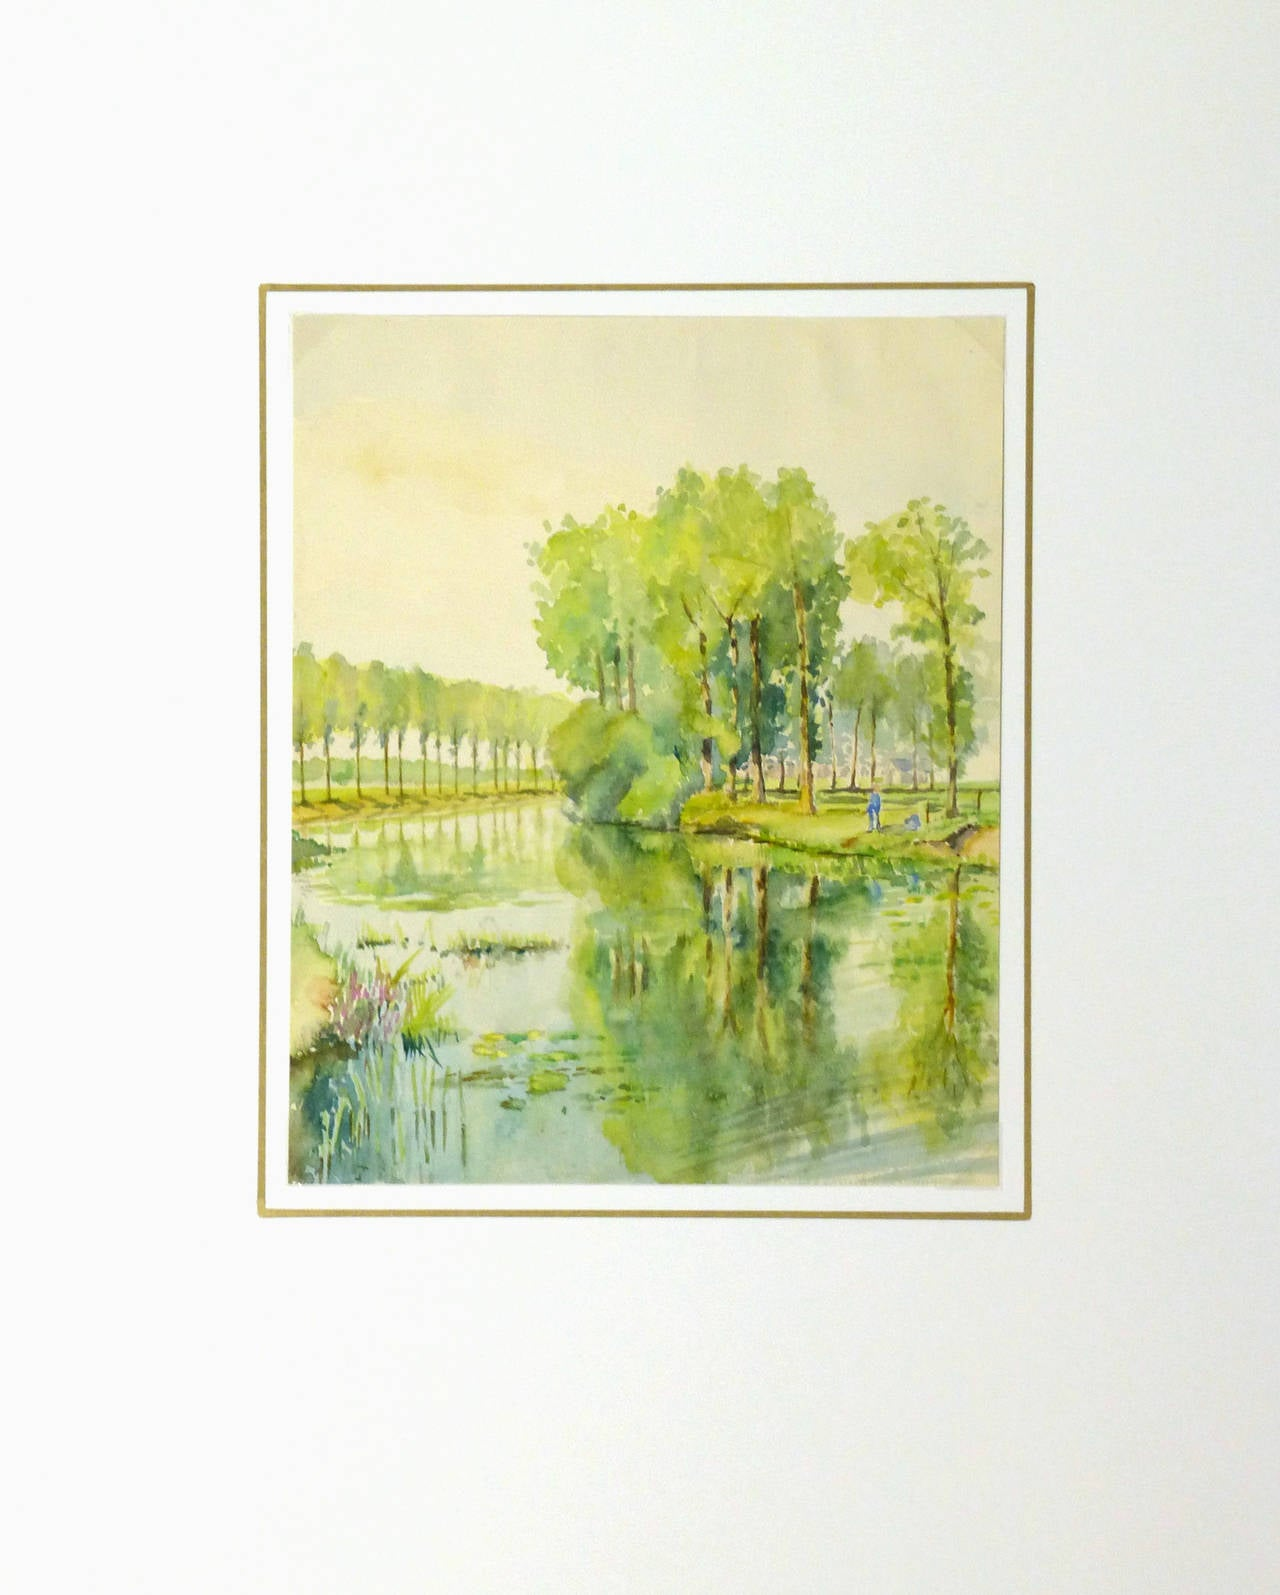 Vintage French Landscape Painting 1